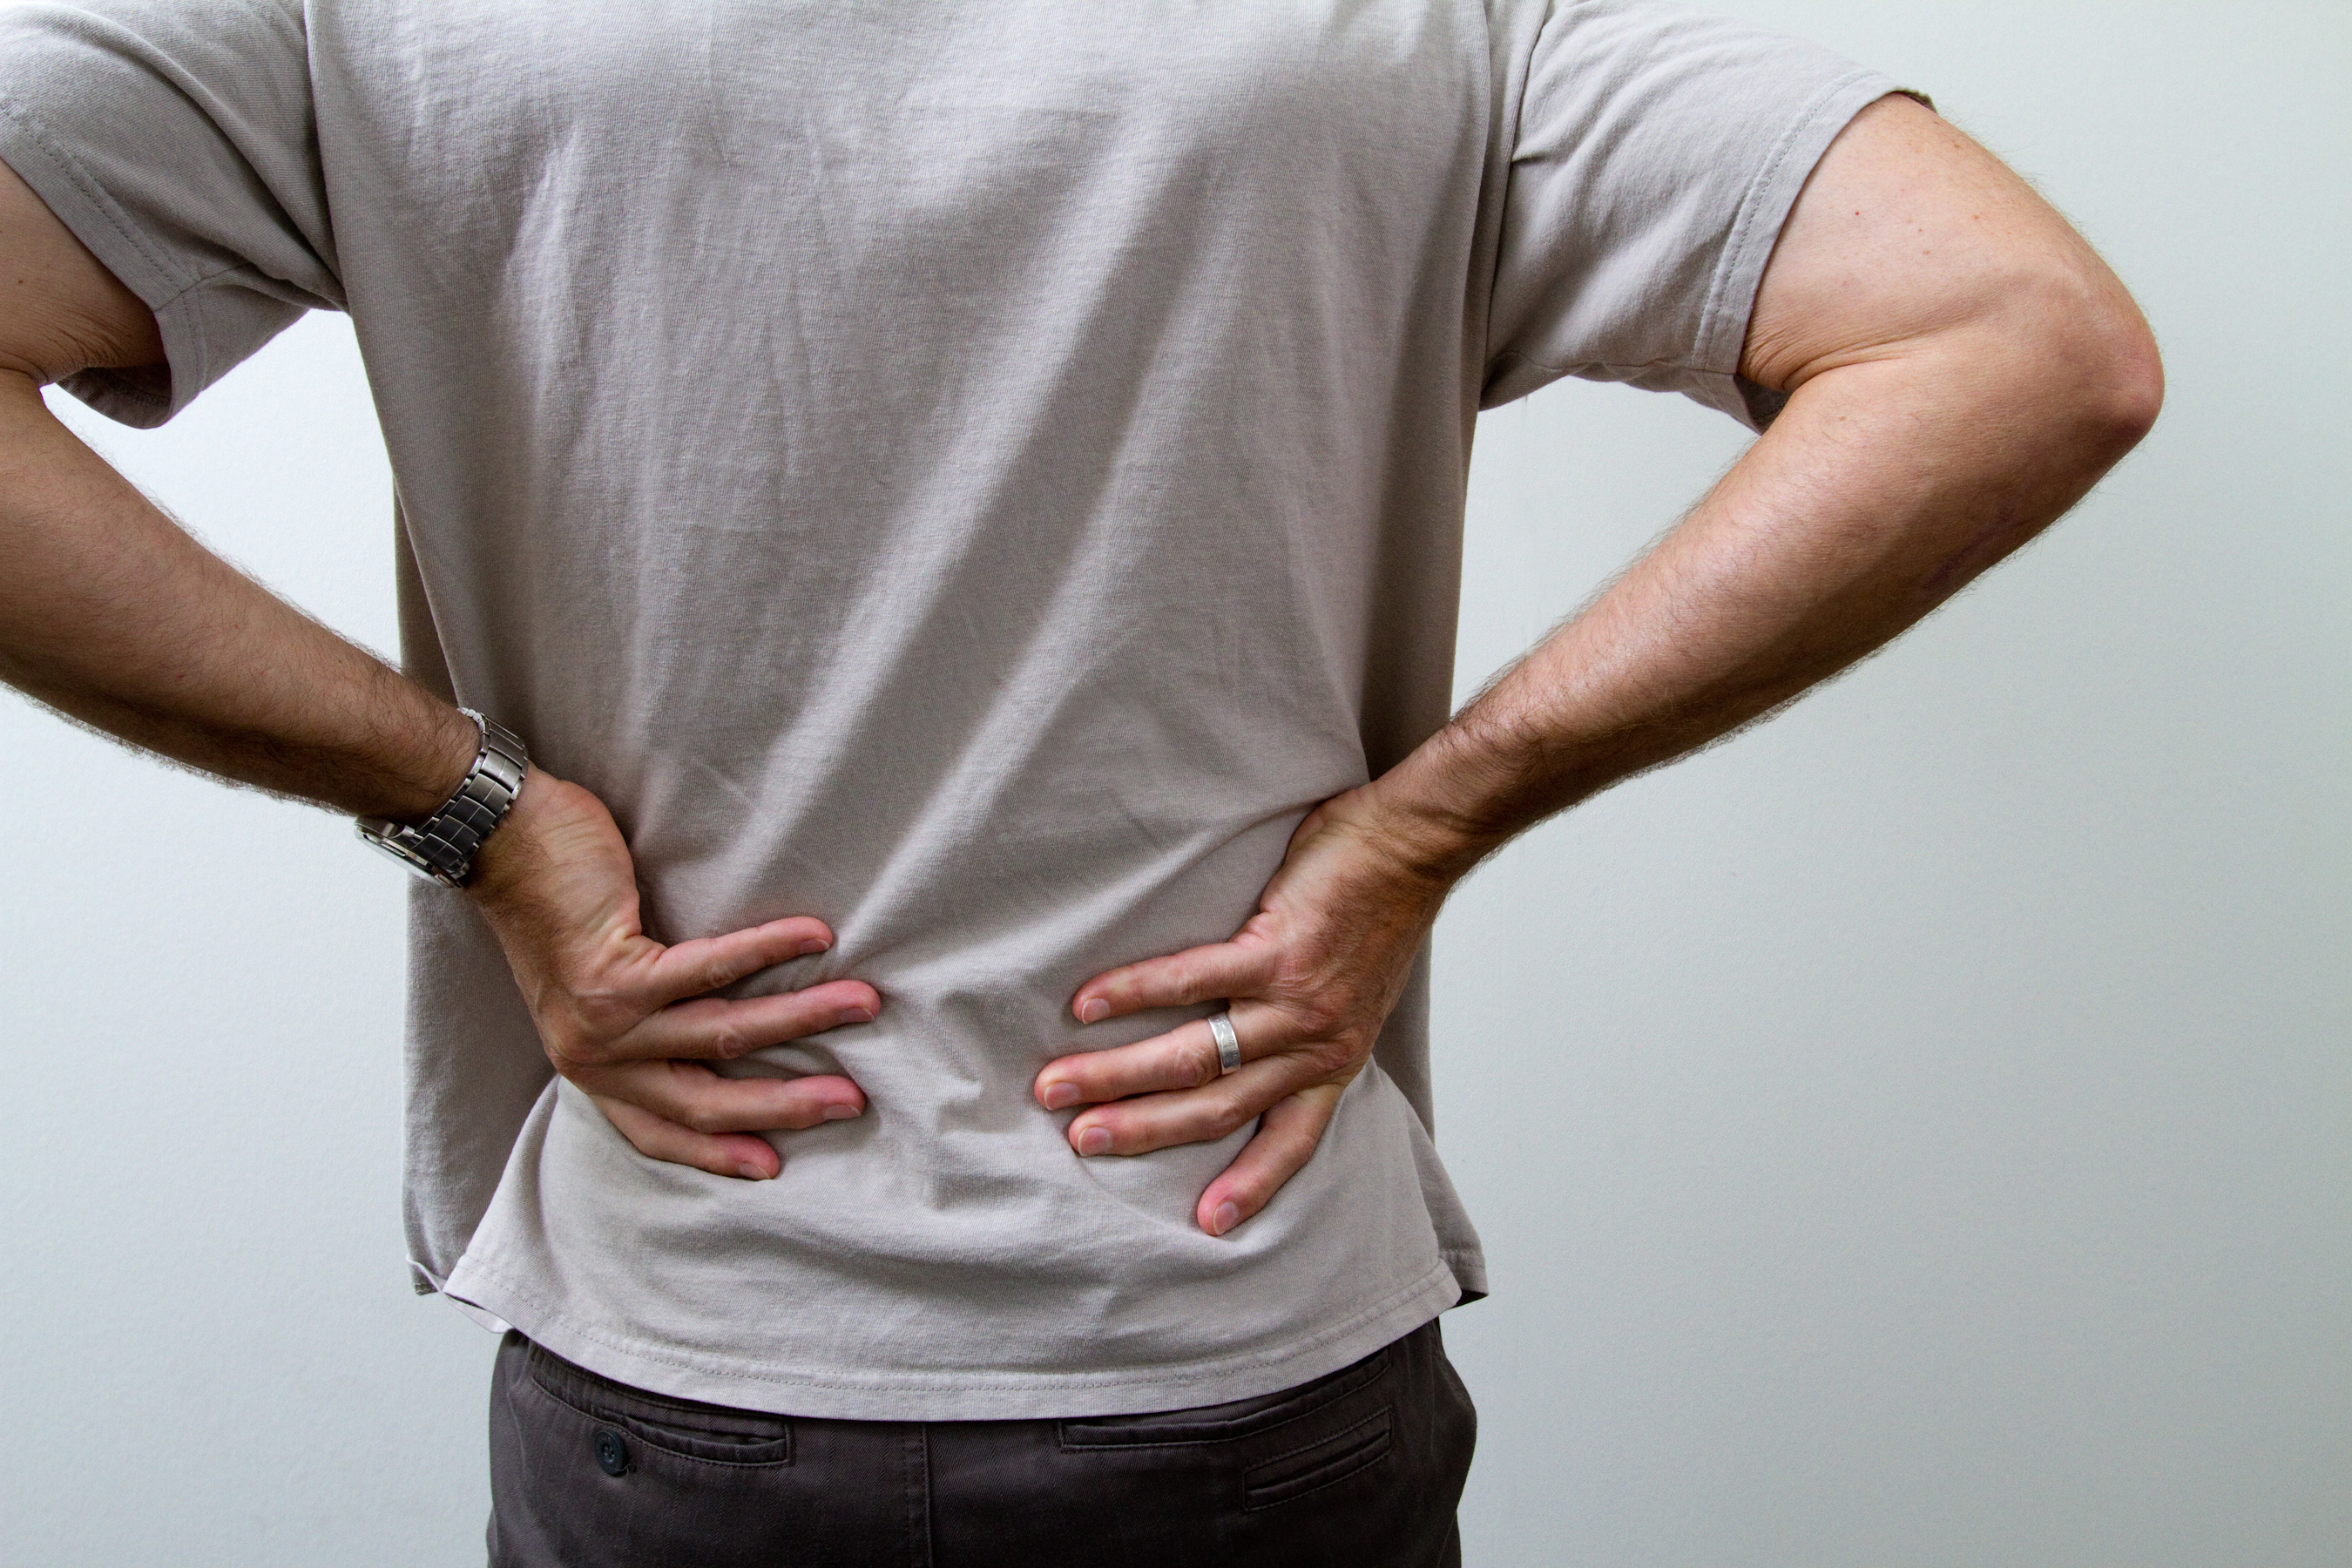 How to deal with sudden back pain bothering you right after eating